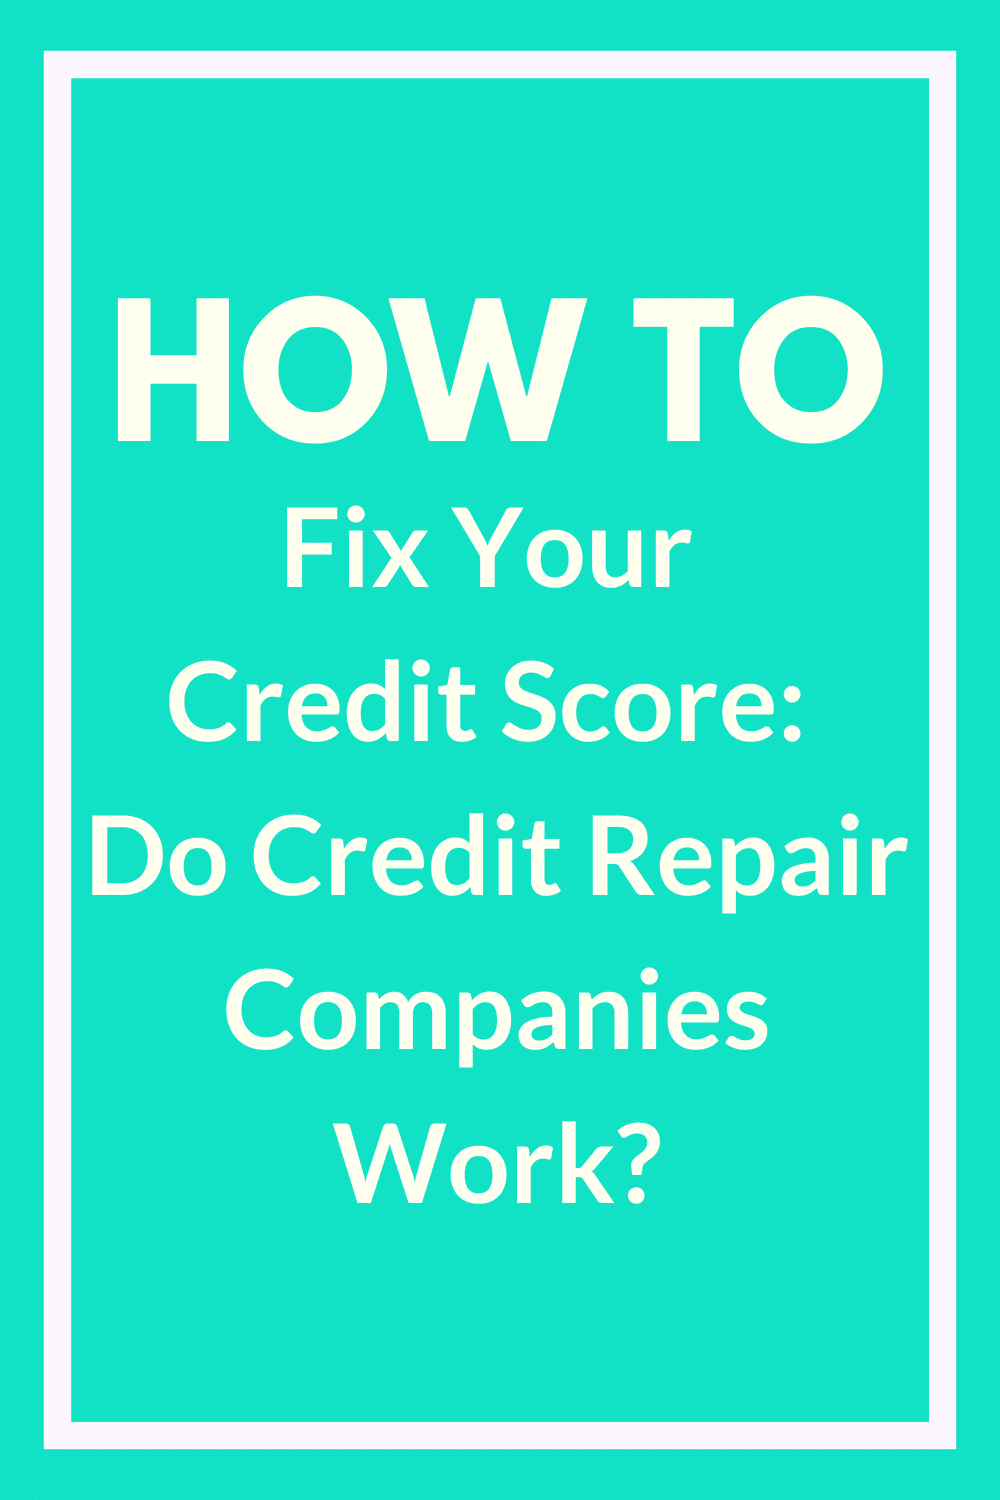 How to Fix Your Credit Score: Do Credit Repair Companies Work? So your credit's tanked and you don't know what to do. You've seen ads for companies that help you fix your credit, but do they work? Find out how to fix your credit score without losing your mind — or your money.